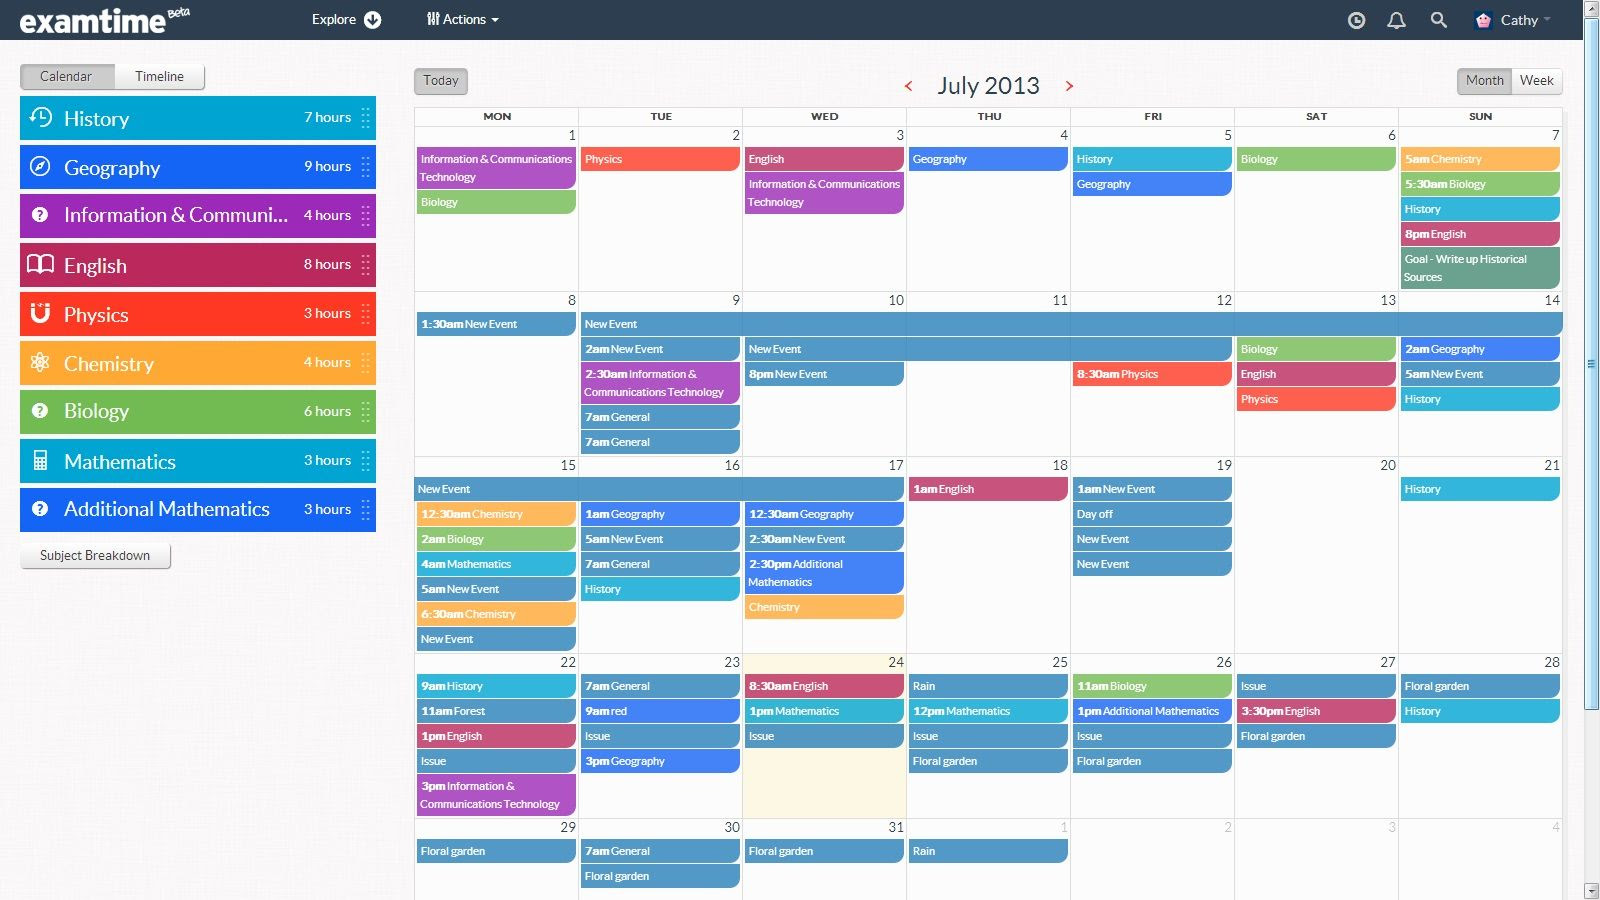 1000+ images about Creating a Study TimeTable on Pinterest ...